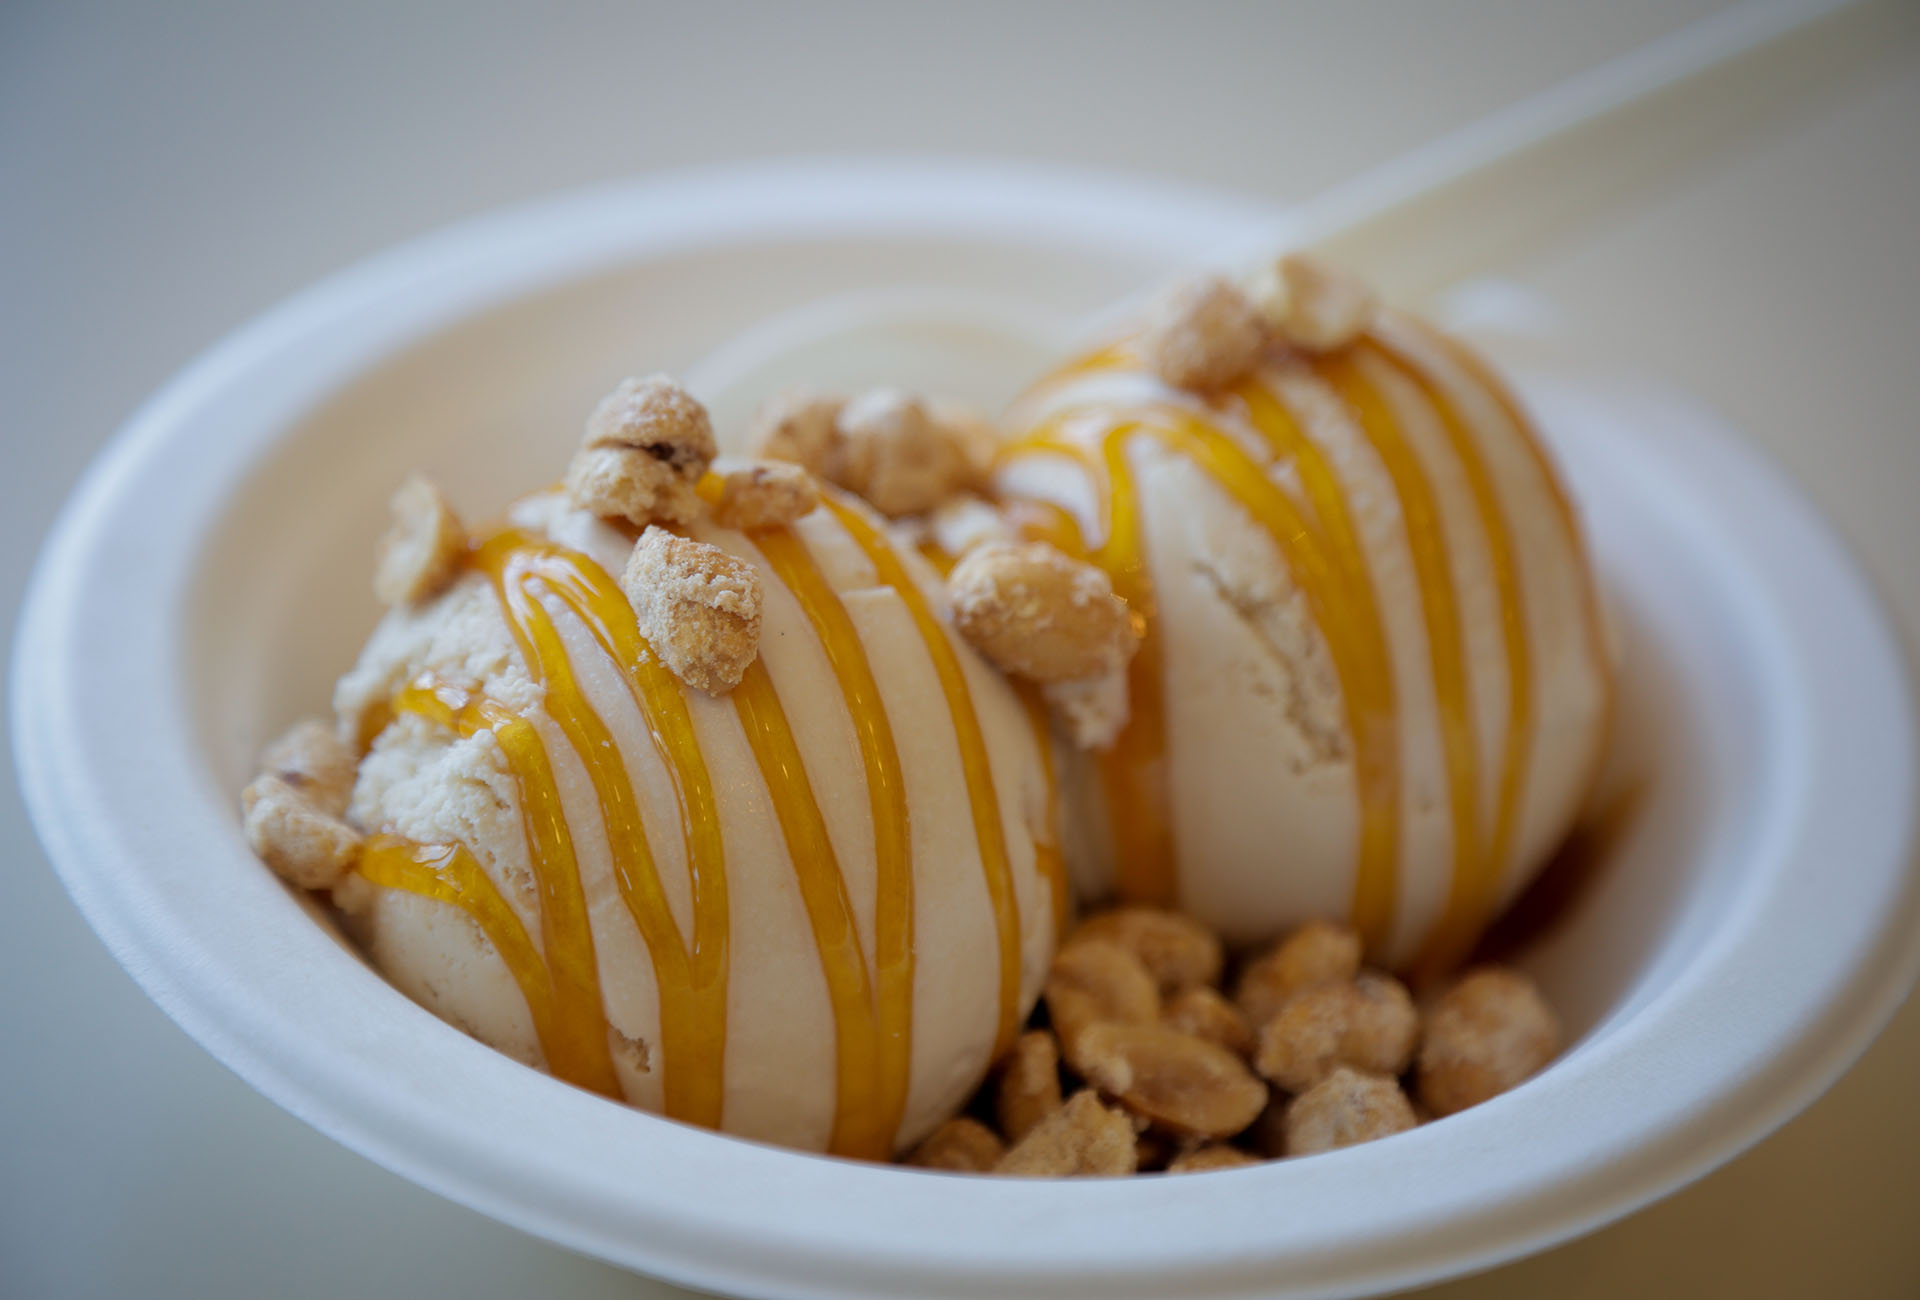 The Whos Your Daddy Sundae, made with beer ice cream, house-made frosted peanuts and bourbon caramel sauce.